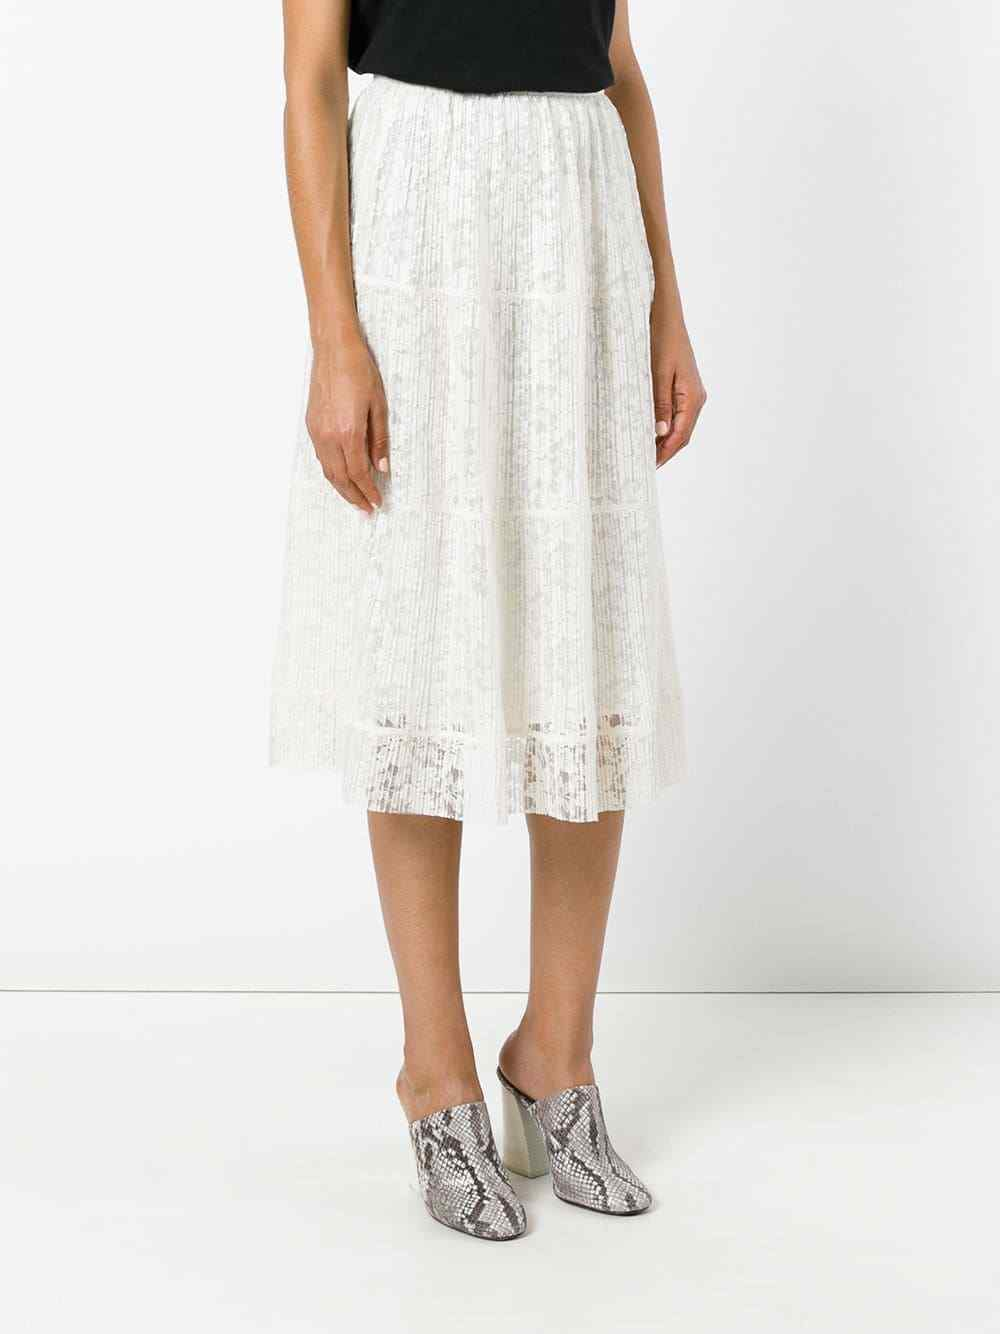 NEW  SEE BY CHLOÉ micro-pleat lace skirt Natural White [ SZ 44 ]  G223